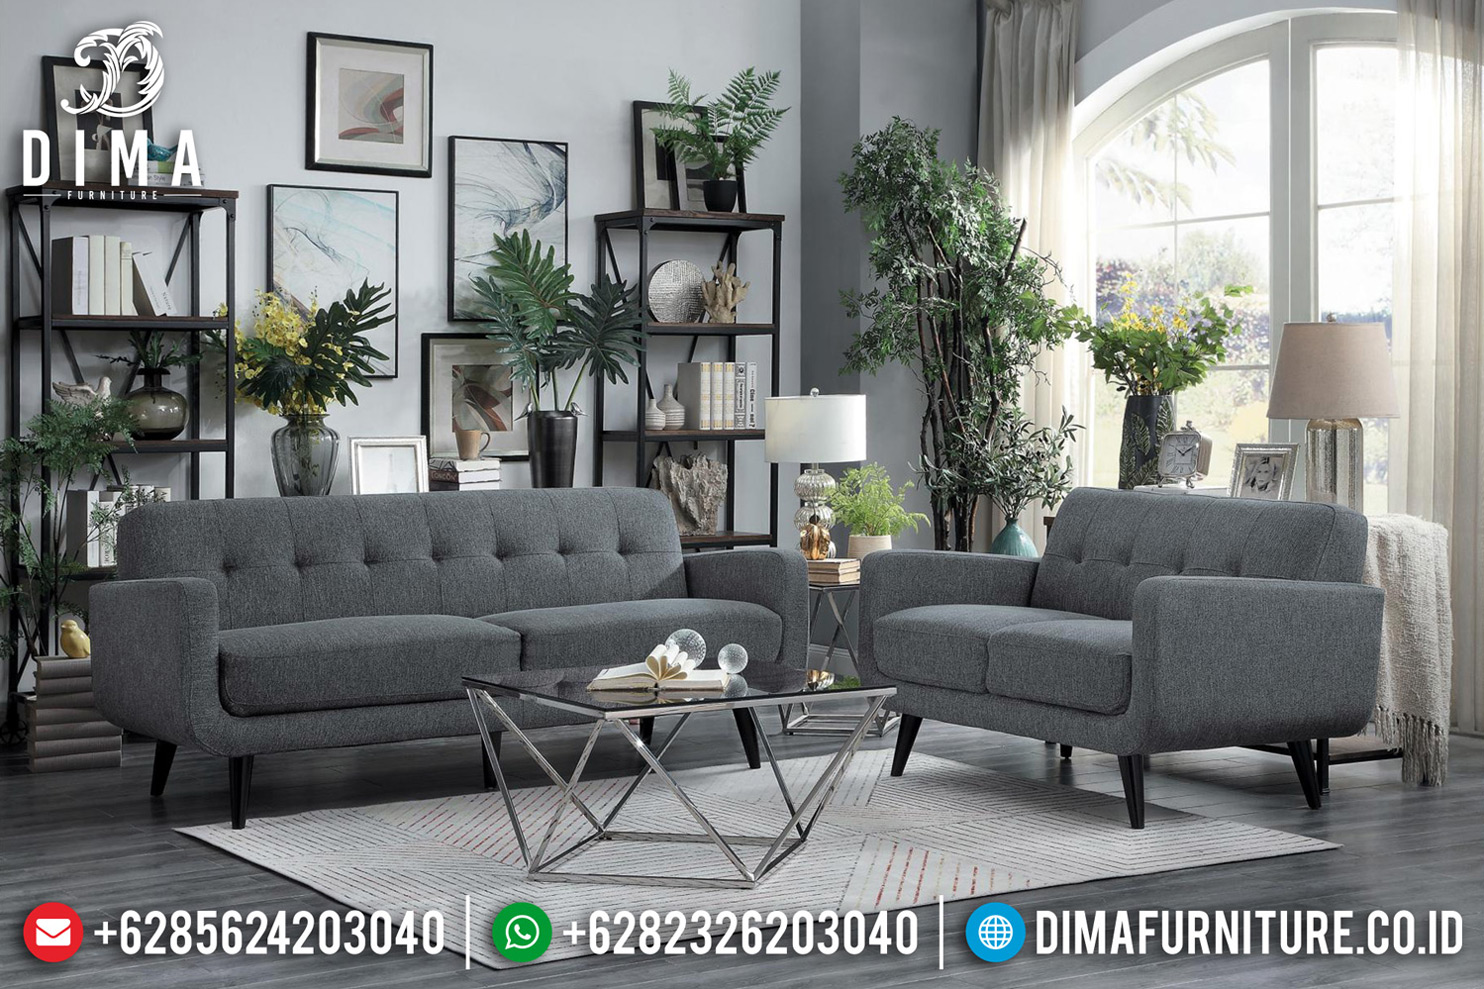 Set Sofa Tamu Minimalis Modern Jepara Kayu Jati Perhutani Cat Natural Brown BT-0618